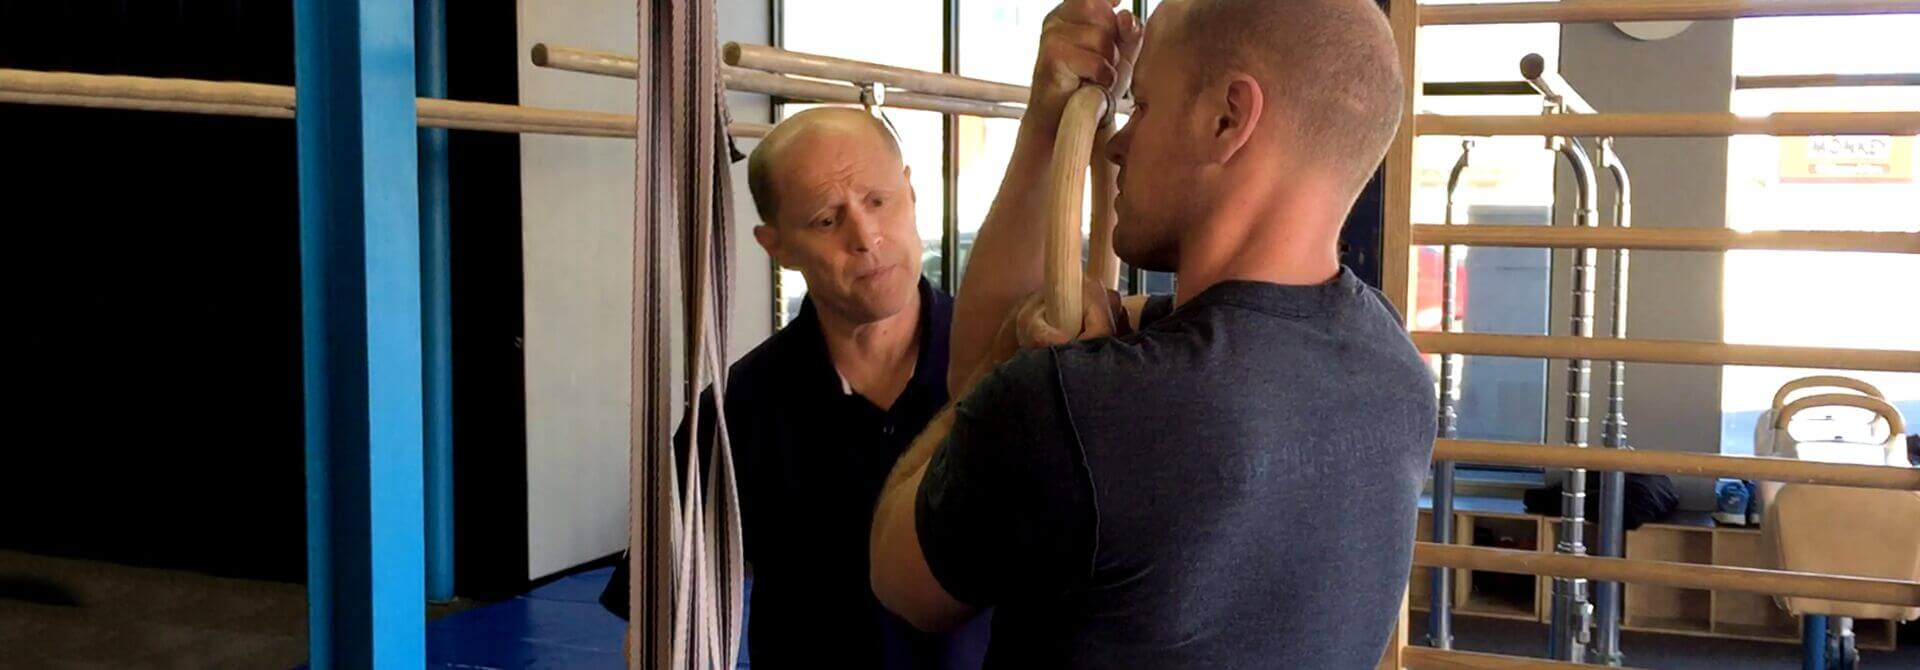 GymnasticBodies athlete Tim Ferriss works on false grip with Coach Christopher Sommer.